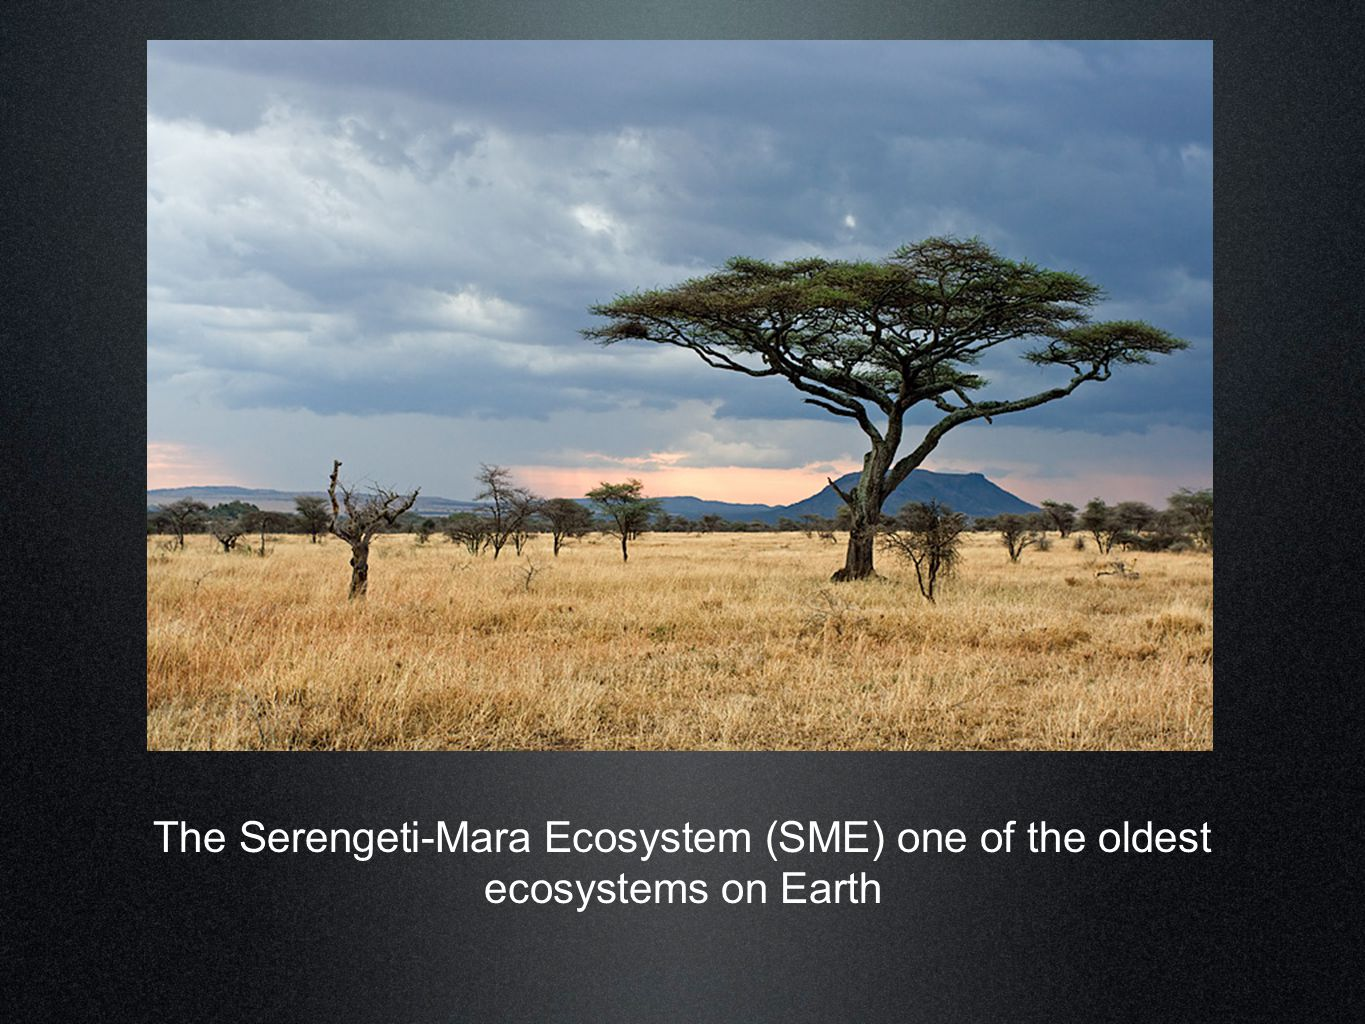 The Serengeti-Mara Ecosystem (SME) one of the oldest ecosystems on Earth